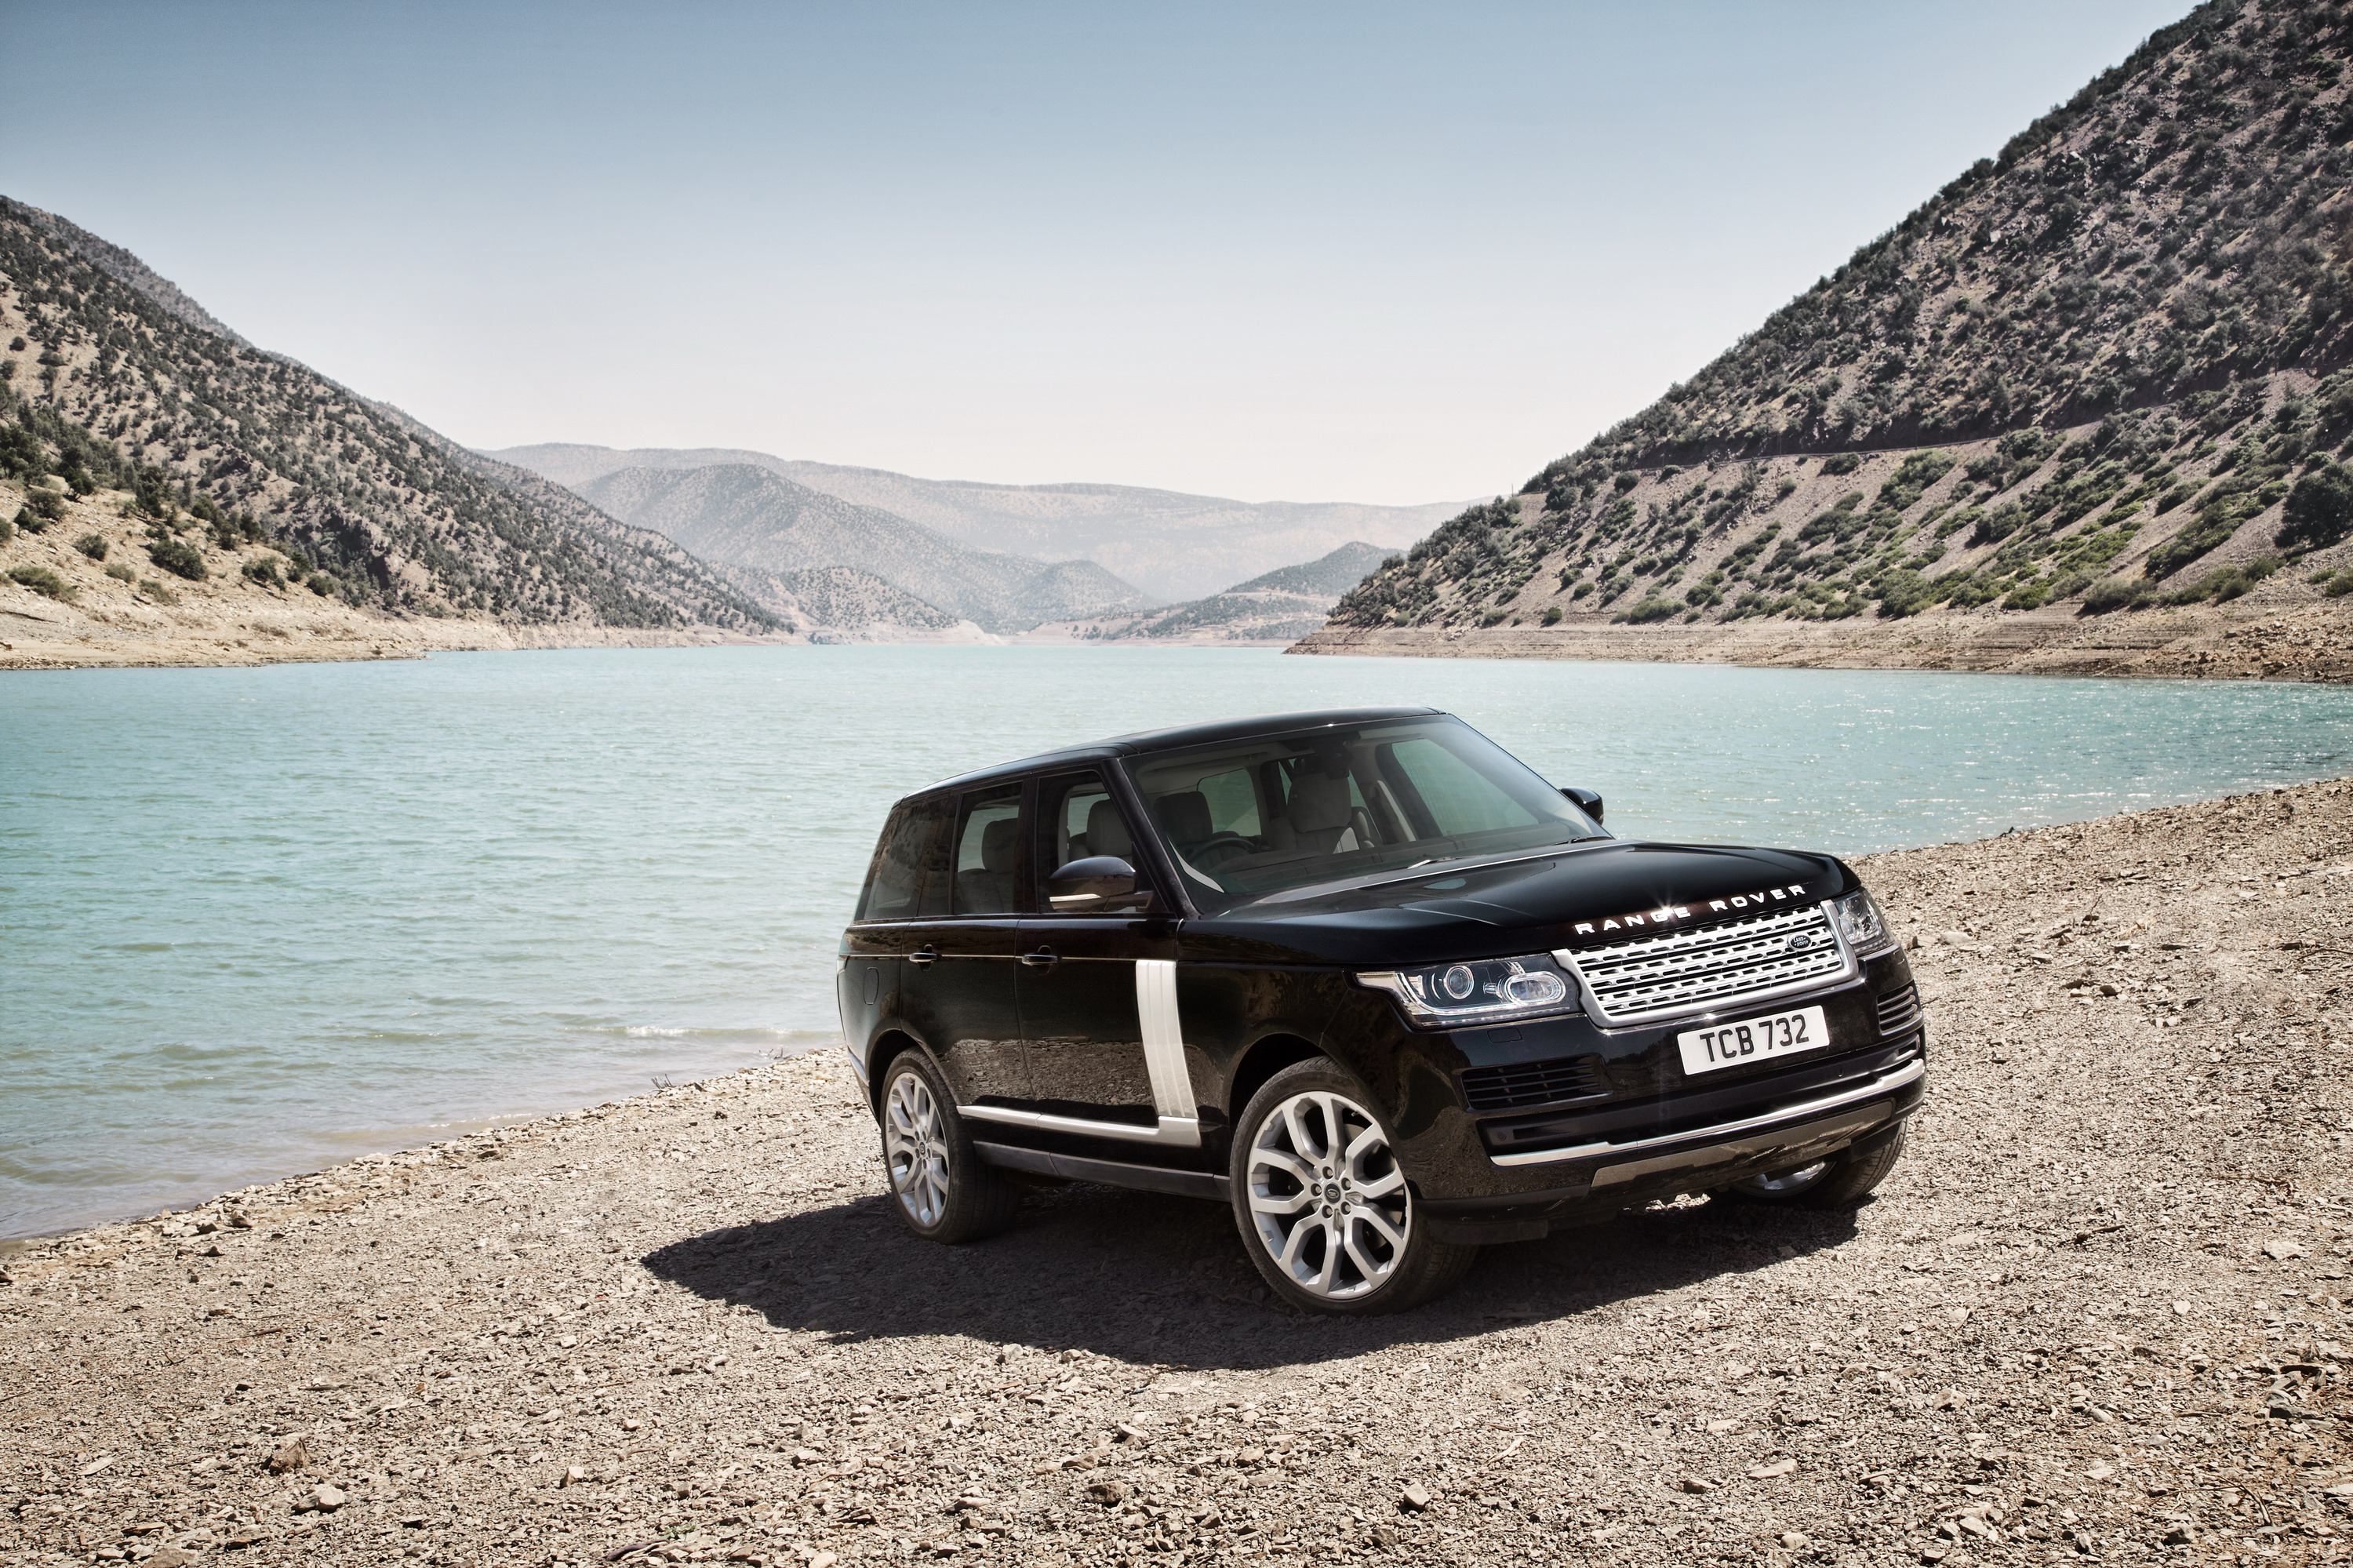 silver metallic composite research large rover siberian land sale landrover suv for groovecar